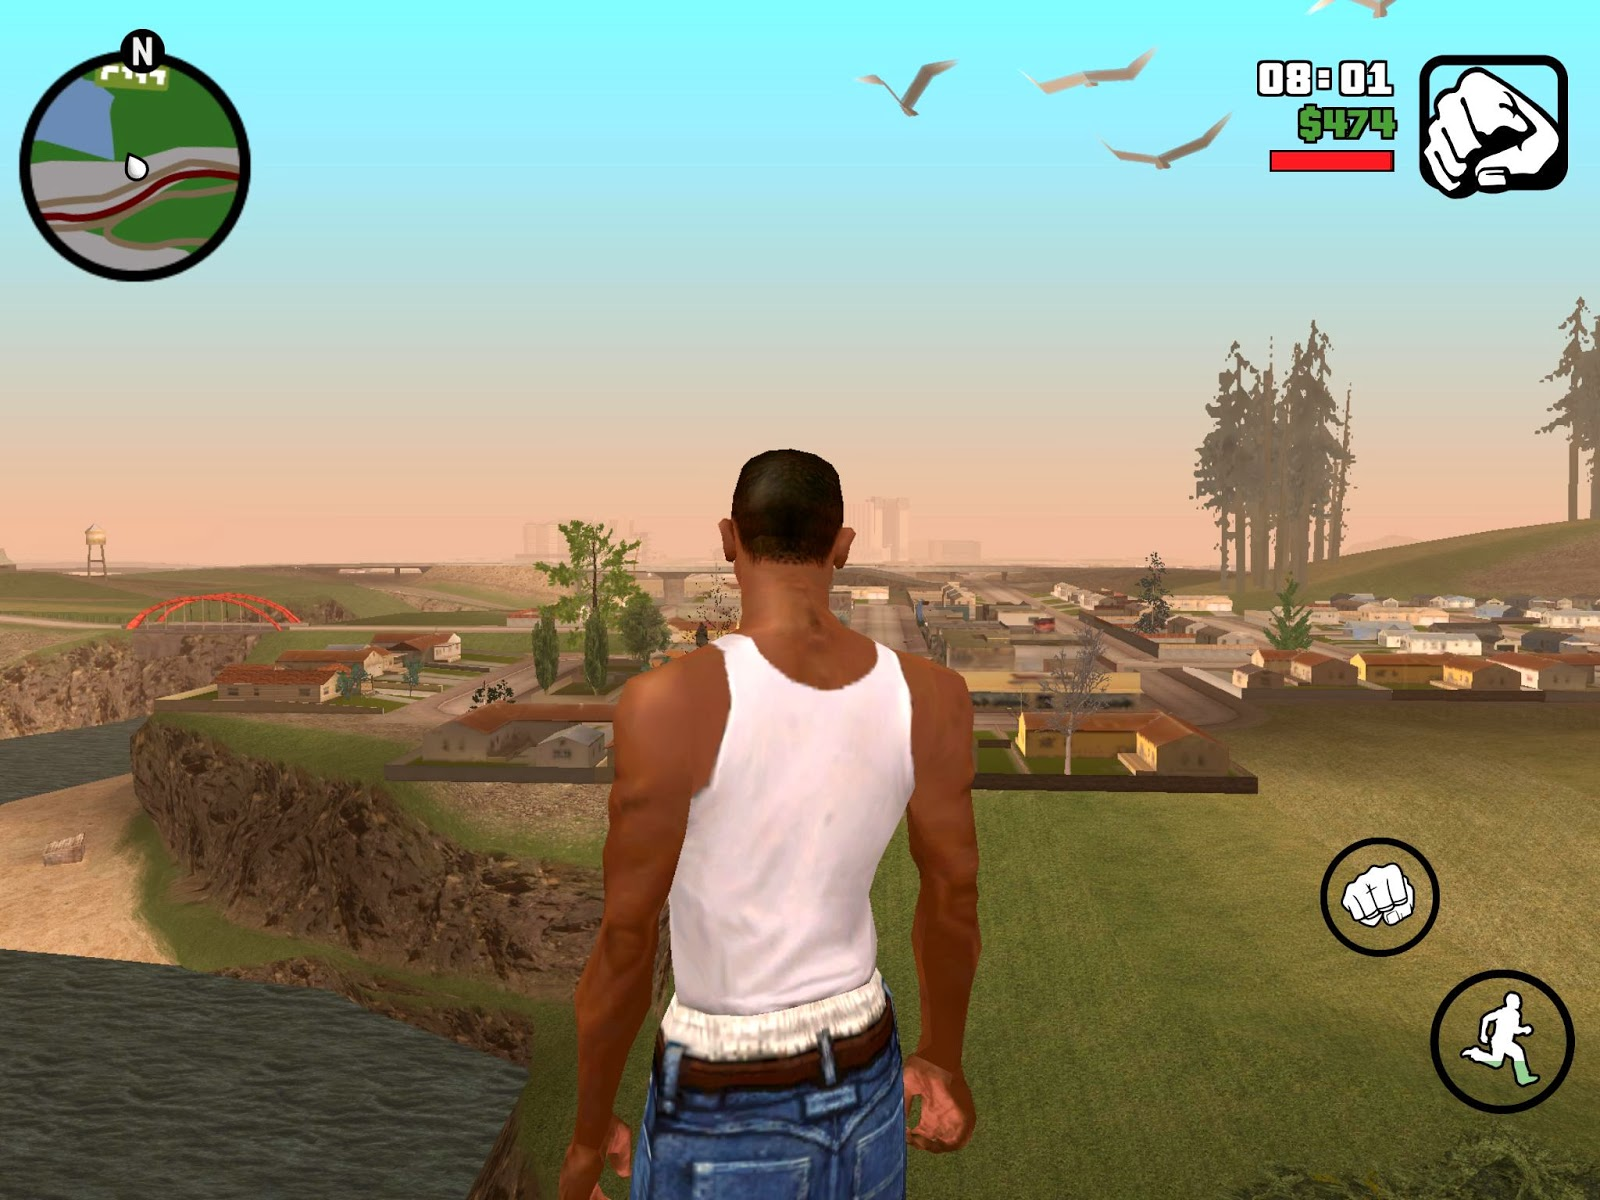 Gta san andreas naked patch download adult galleries